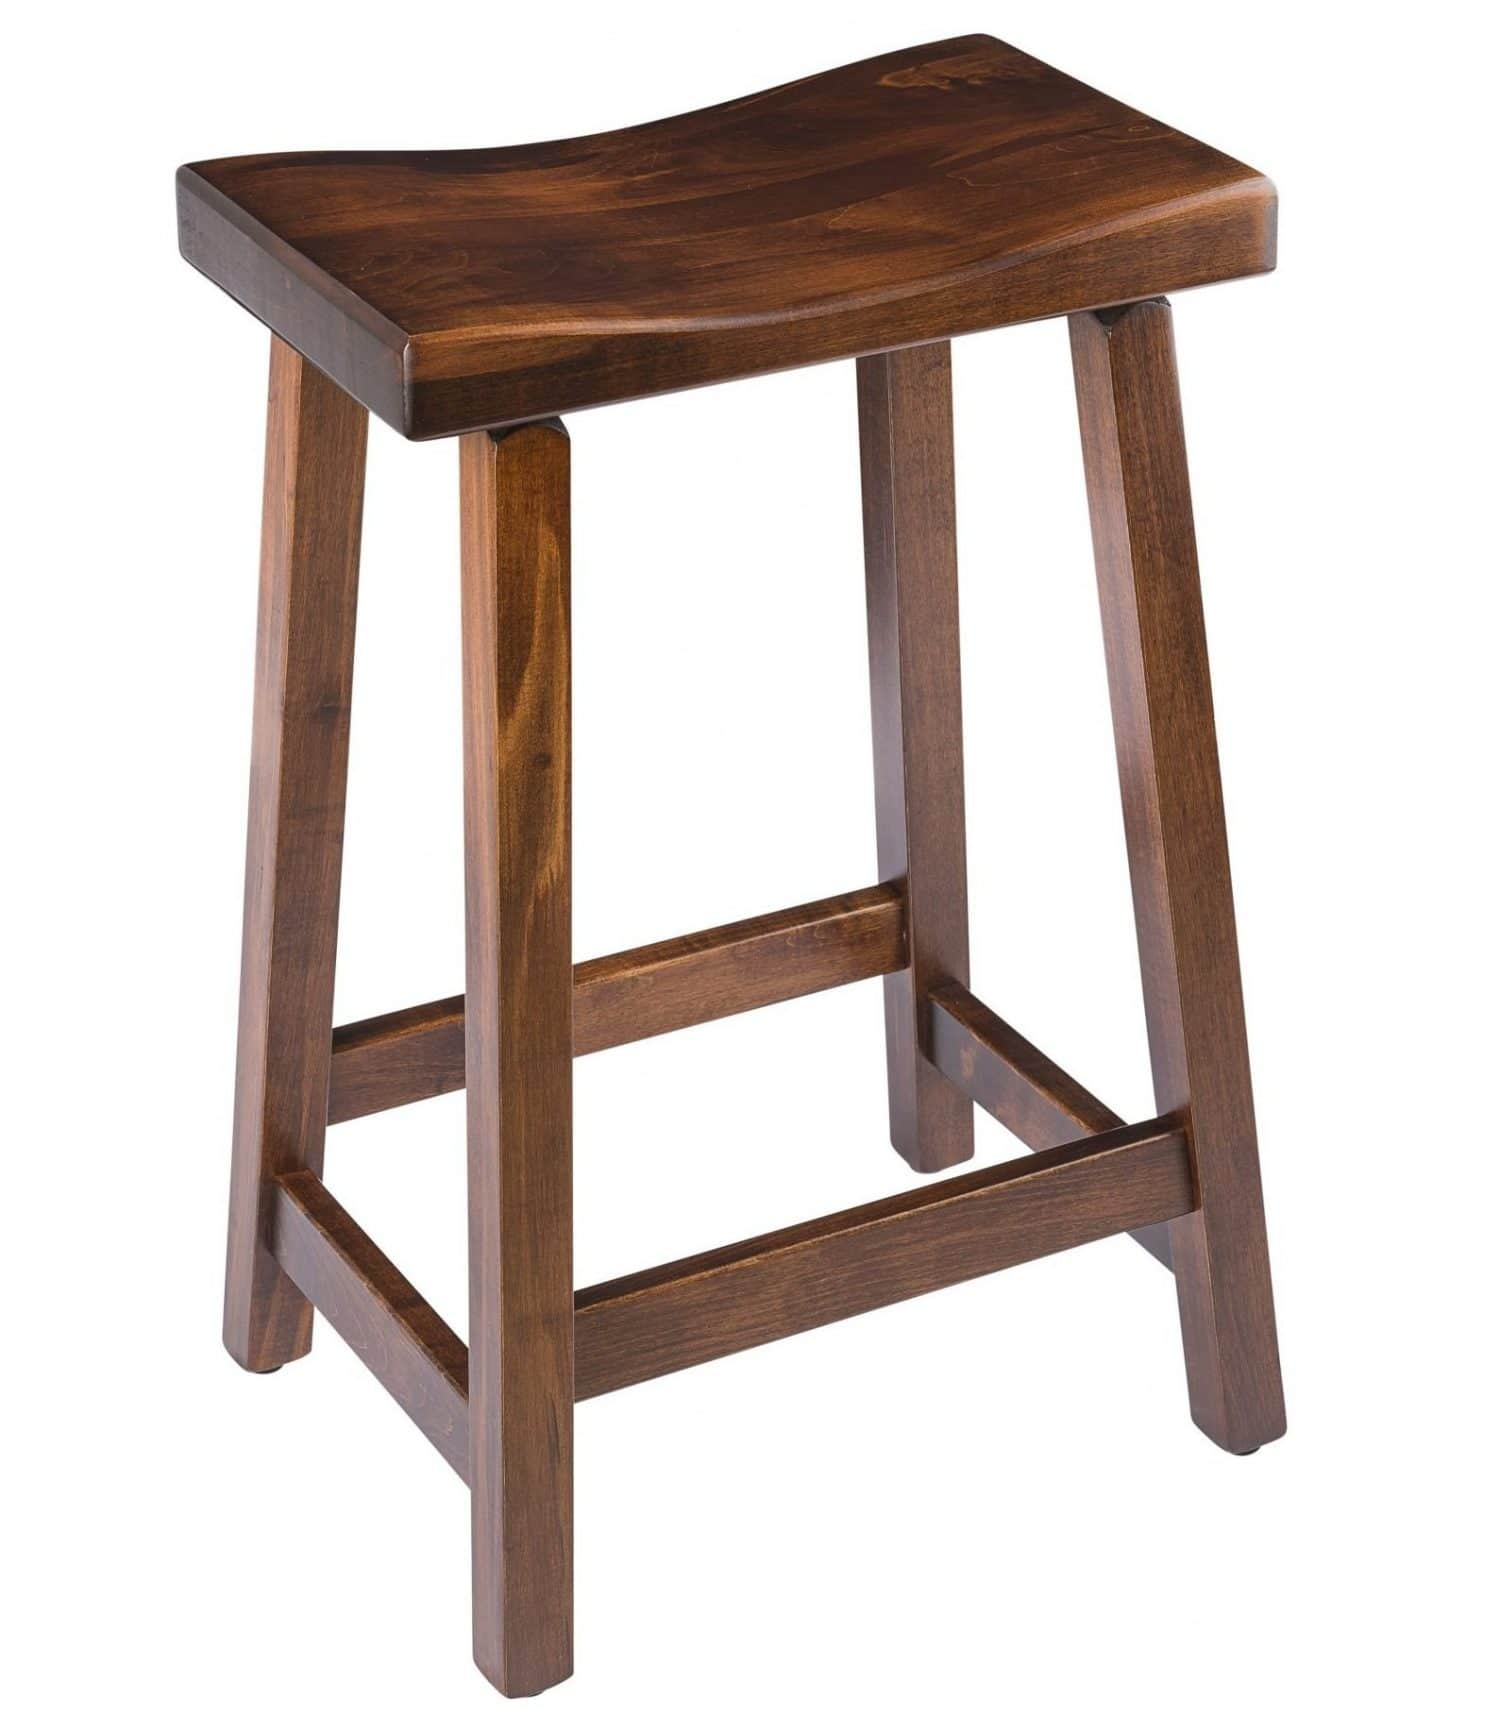 Pleasing Saddle Bar Stool In Maple Wood The Amish Furniture Company Caraccident5 Cool Chair Designs And Ideas Caraccident5Info